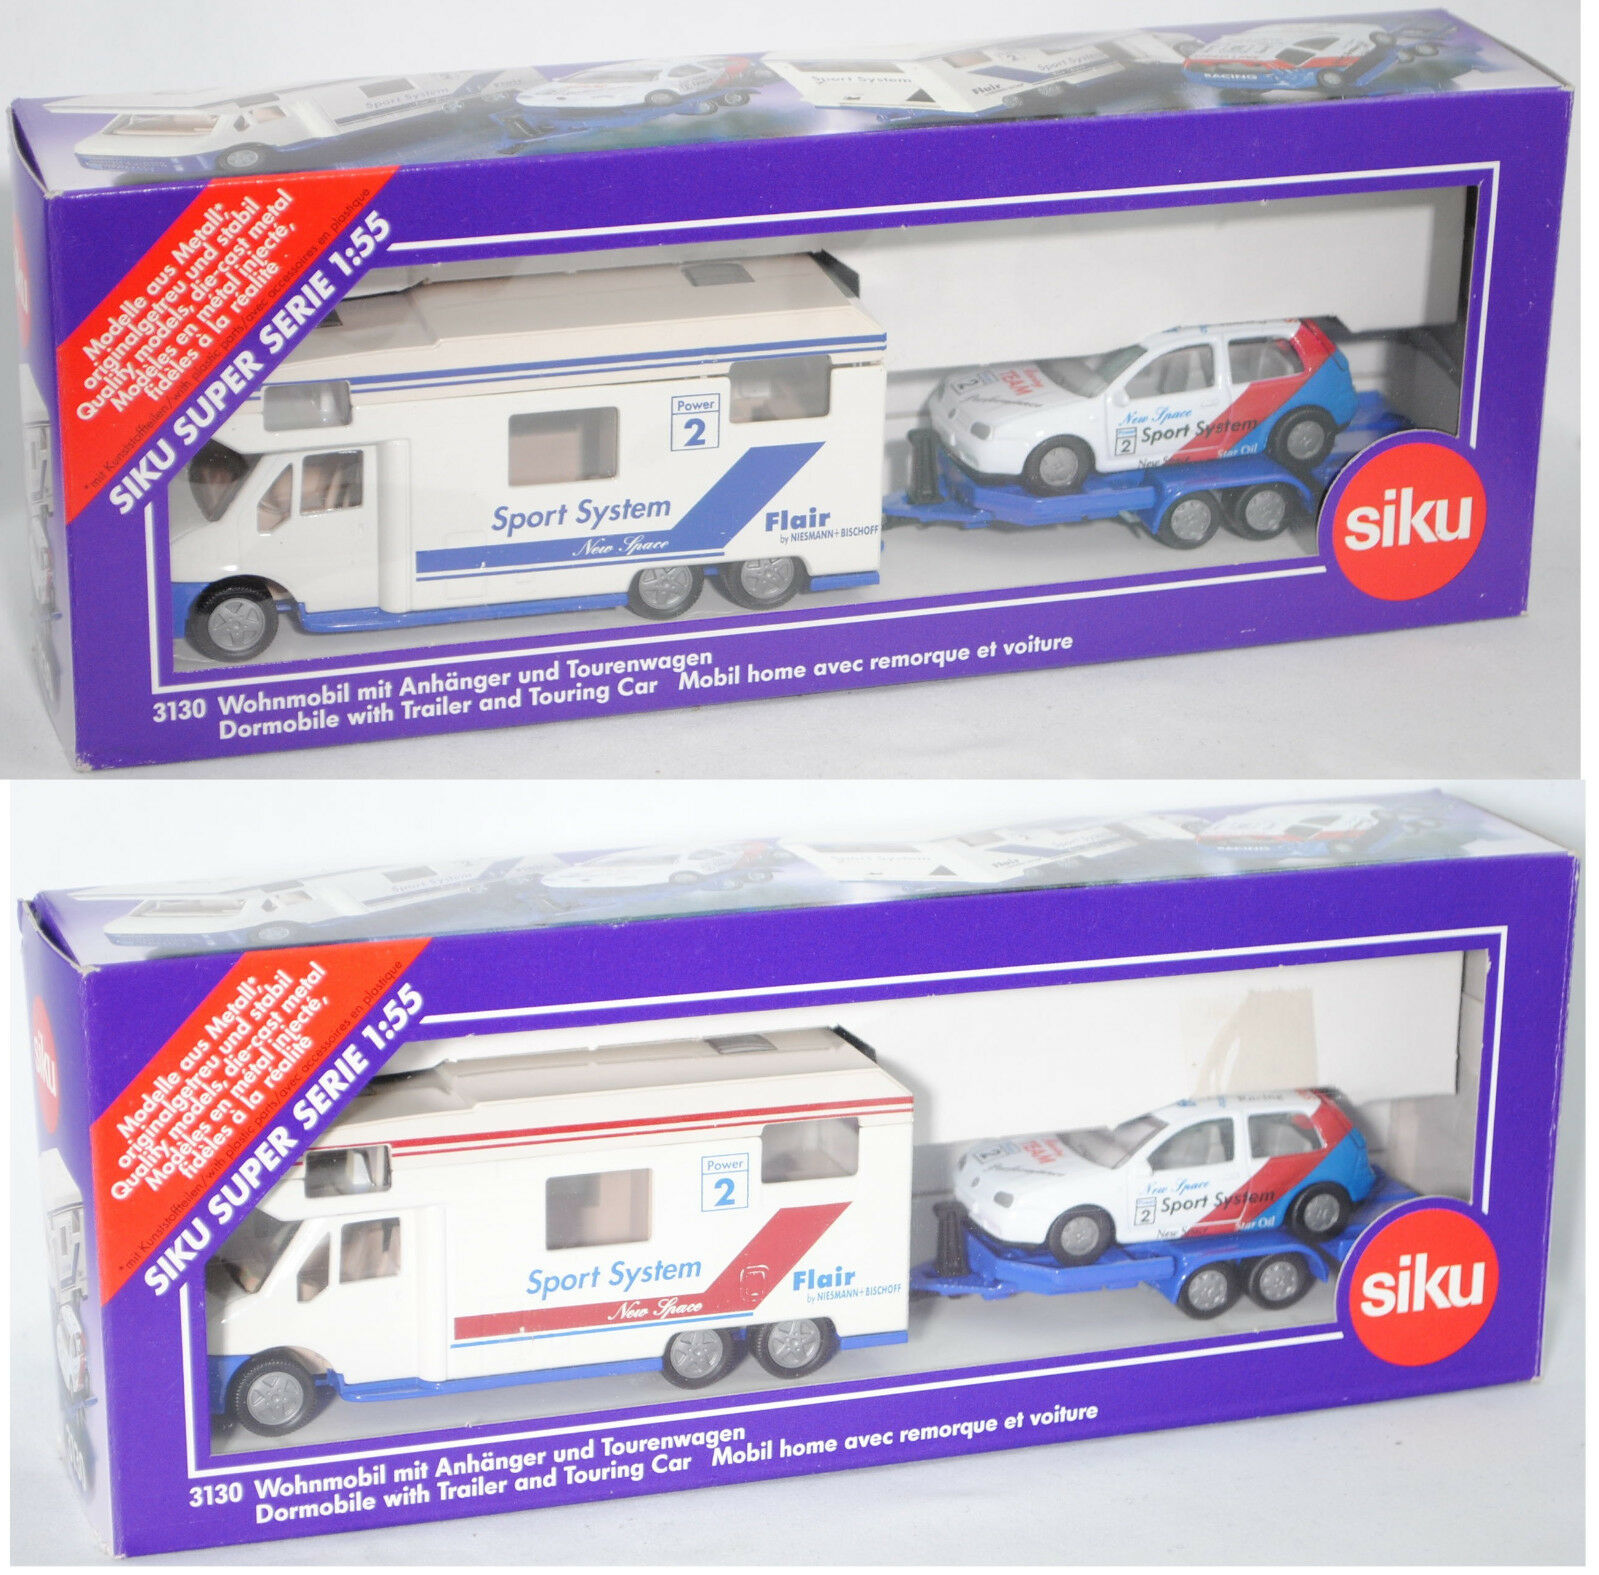 SIKU SUPER 3130 NIESMANN + Bischoff Flair 6700 ta alcôves camping-car & VOITURES 1 55